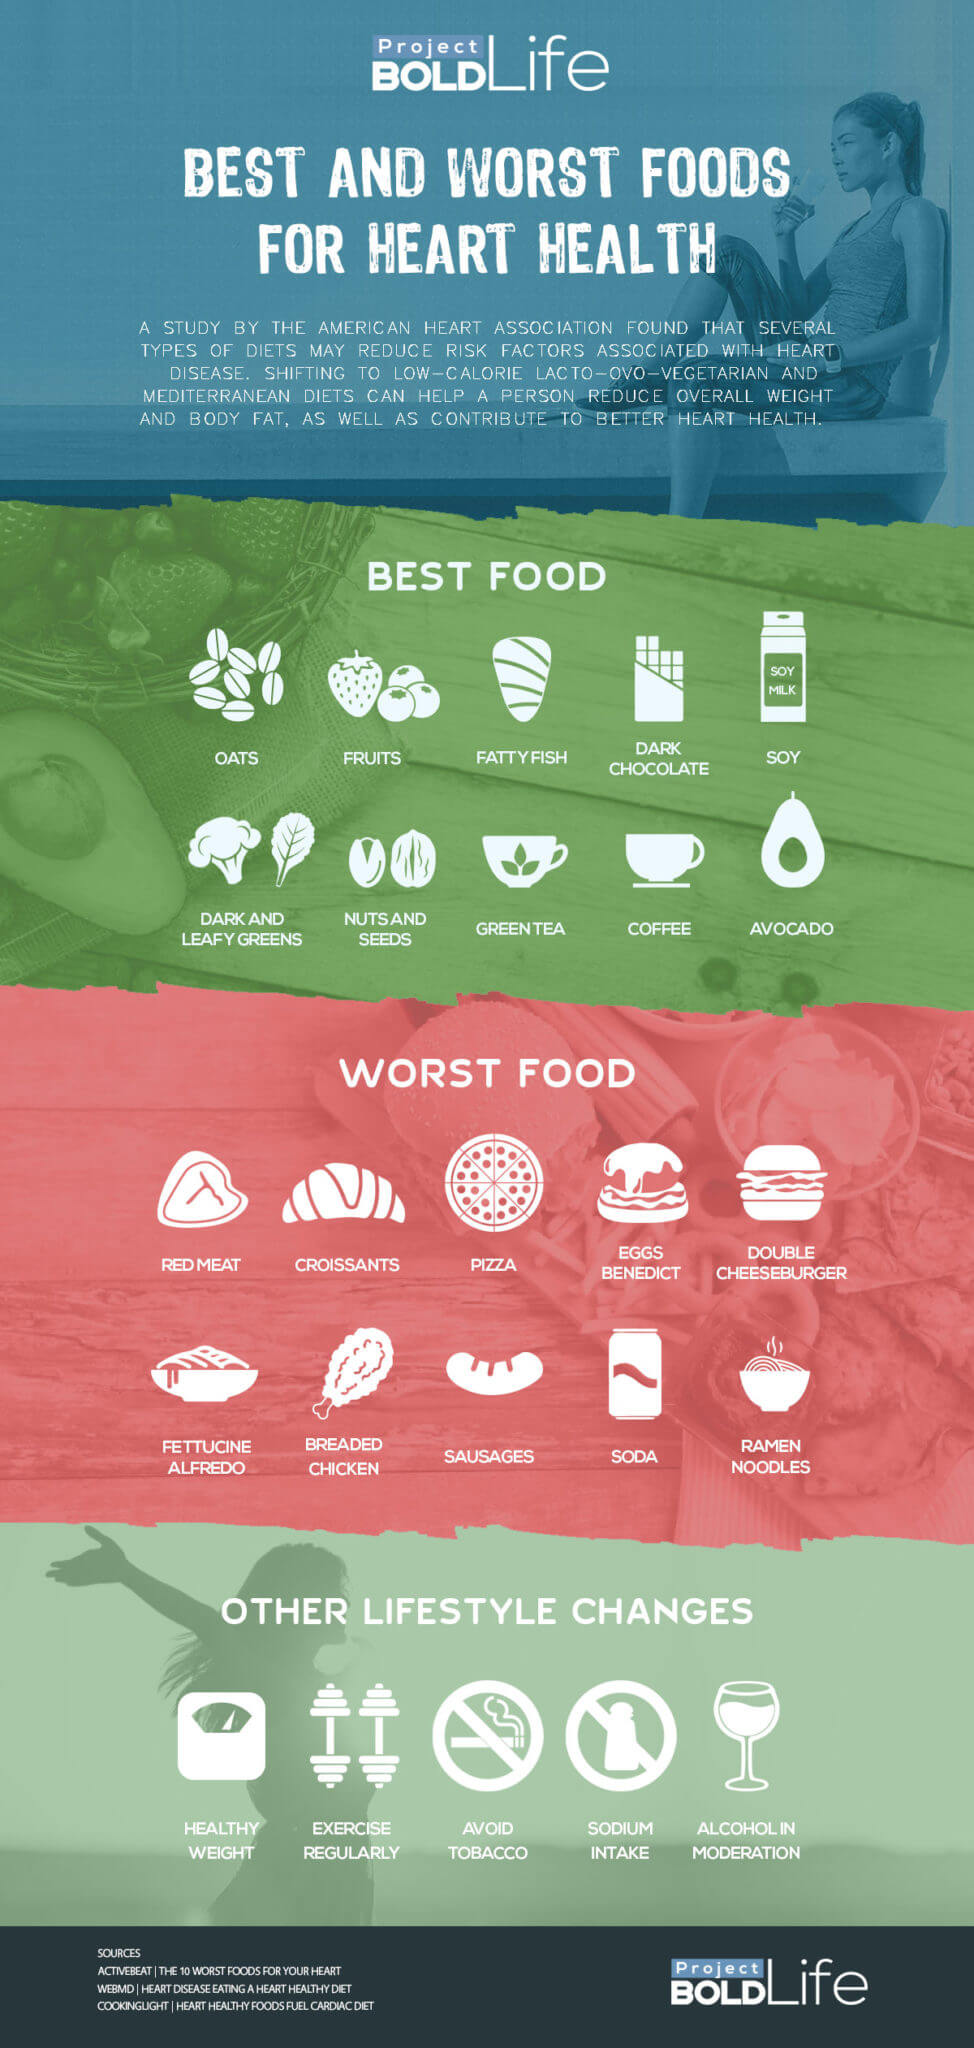 Best and Worst Foods for Hearth Health Infographic